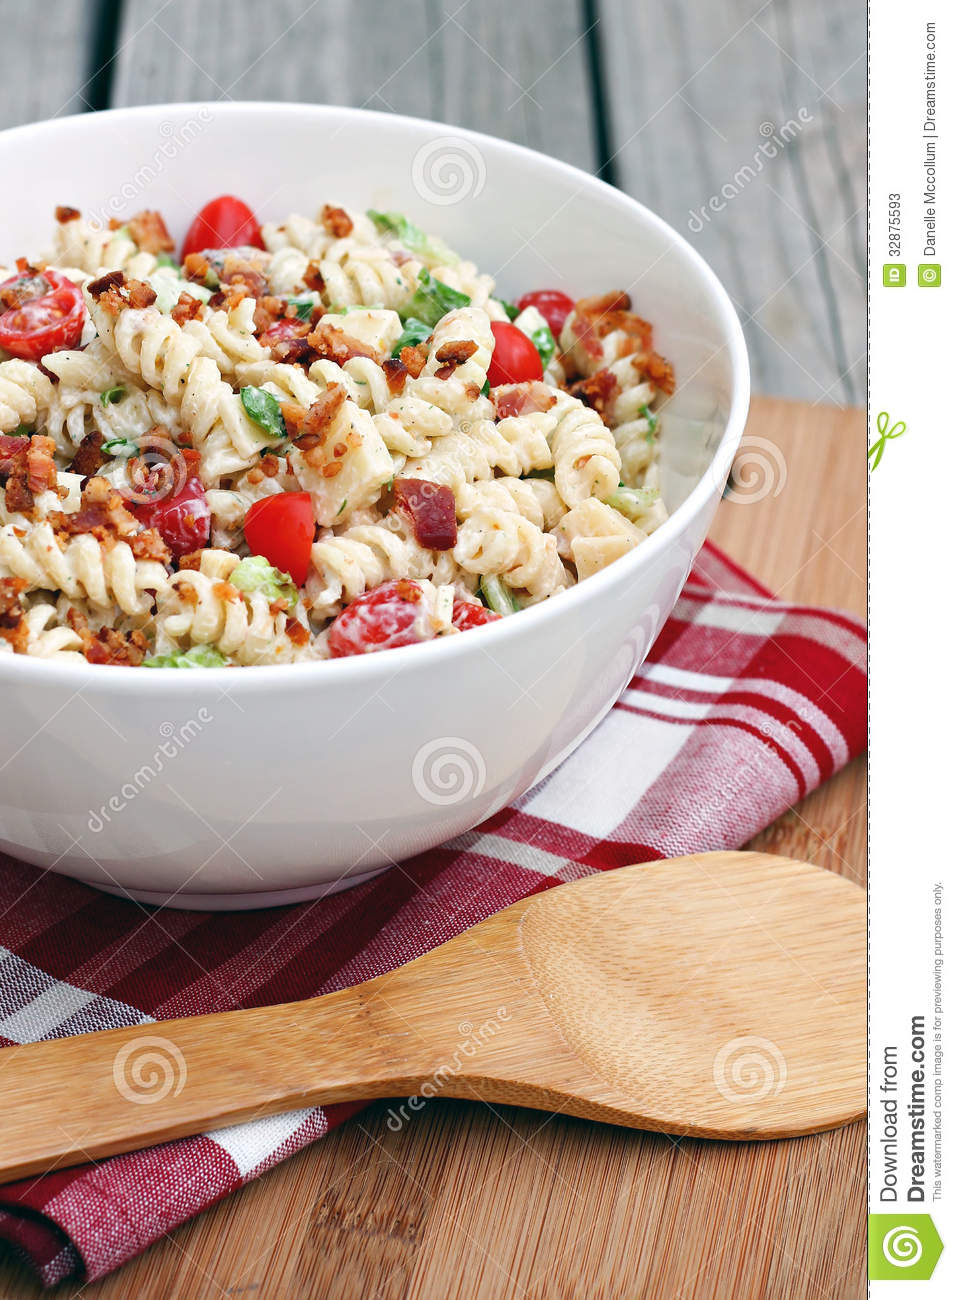 Pasta salad with bacon, lettuce and tomato.